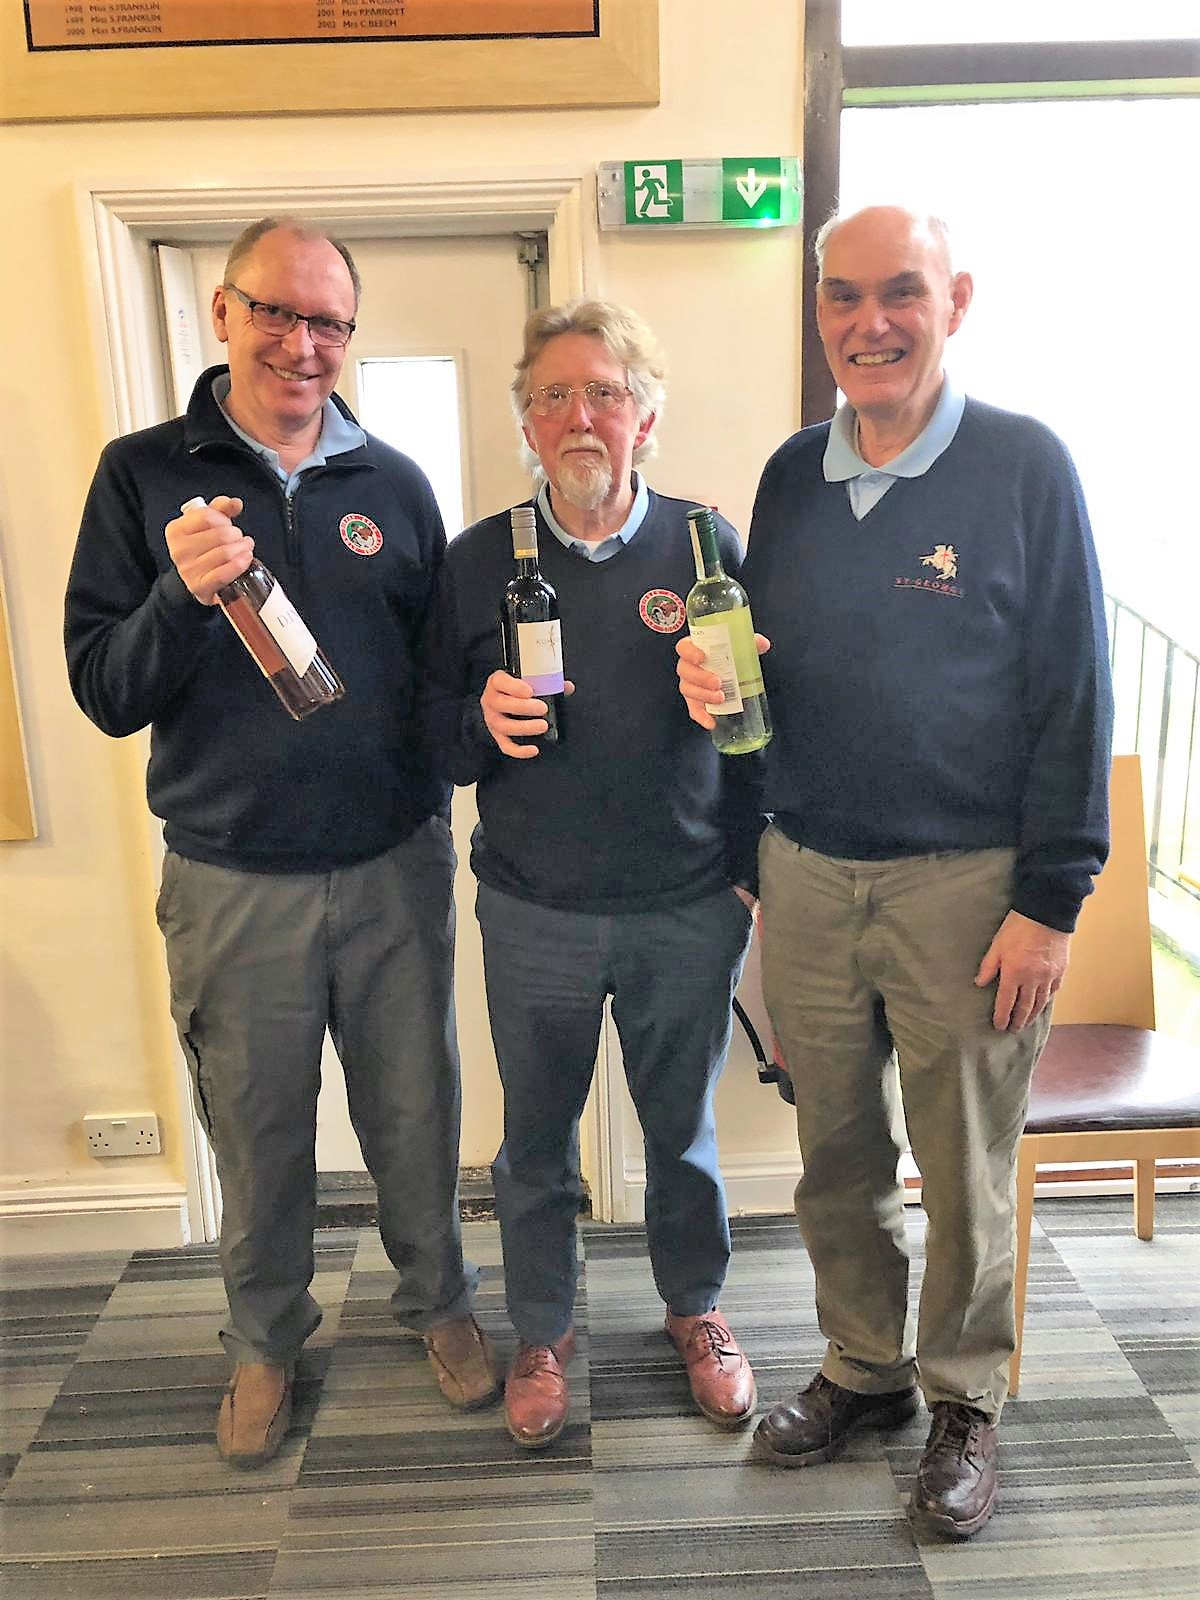 29 Jan. Wine for the Highest Score Consolation Prize. L - R: A Turnpenny; P Huxley; B Coombs